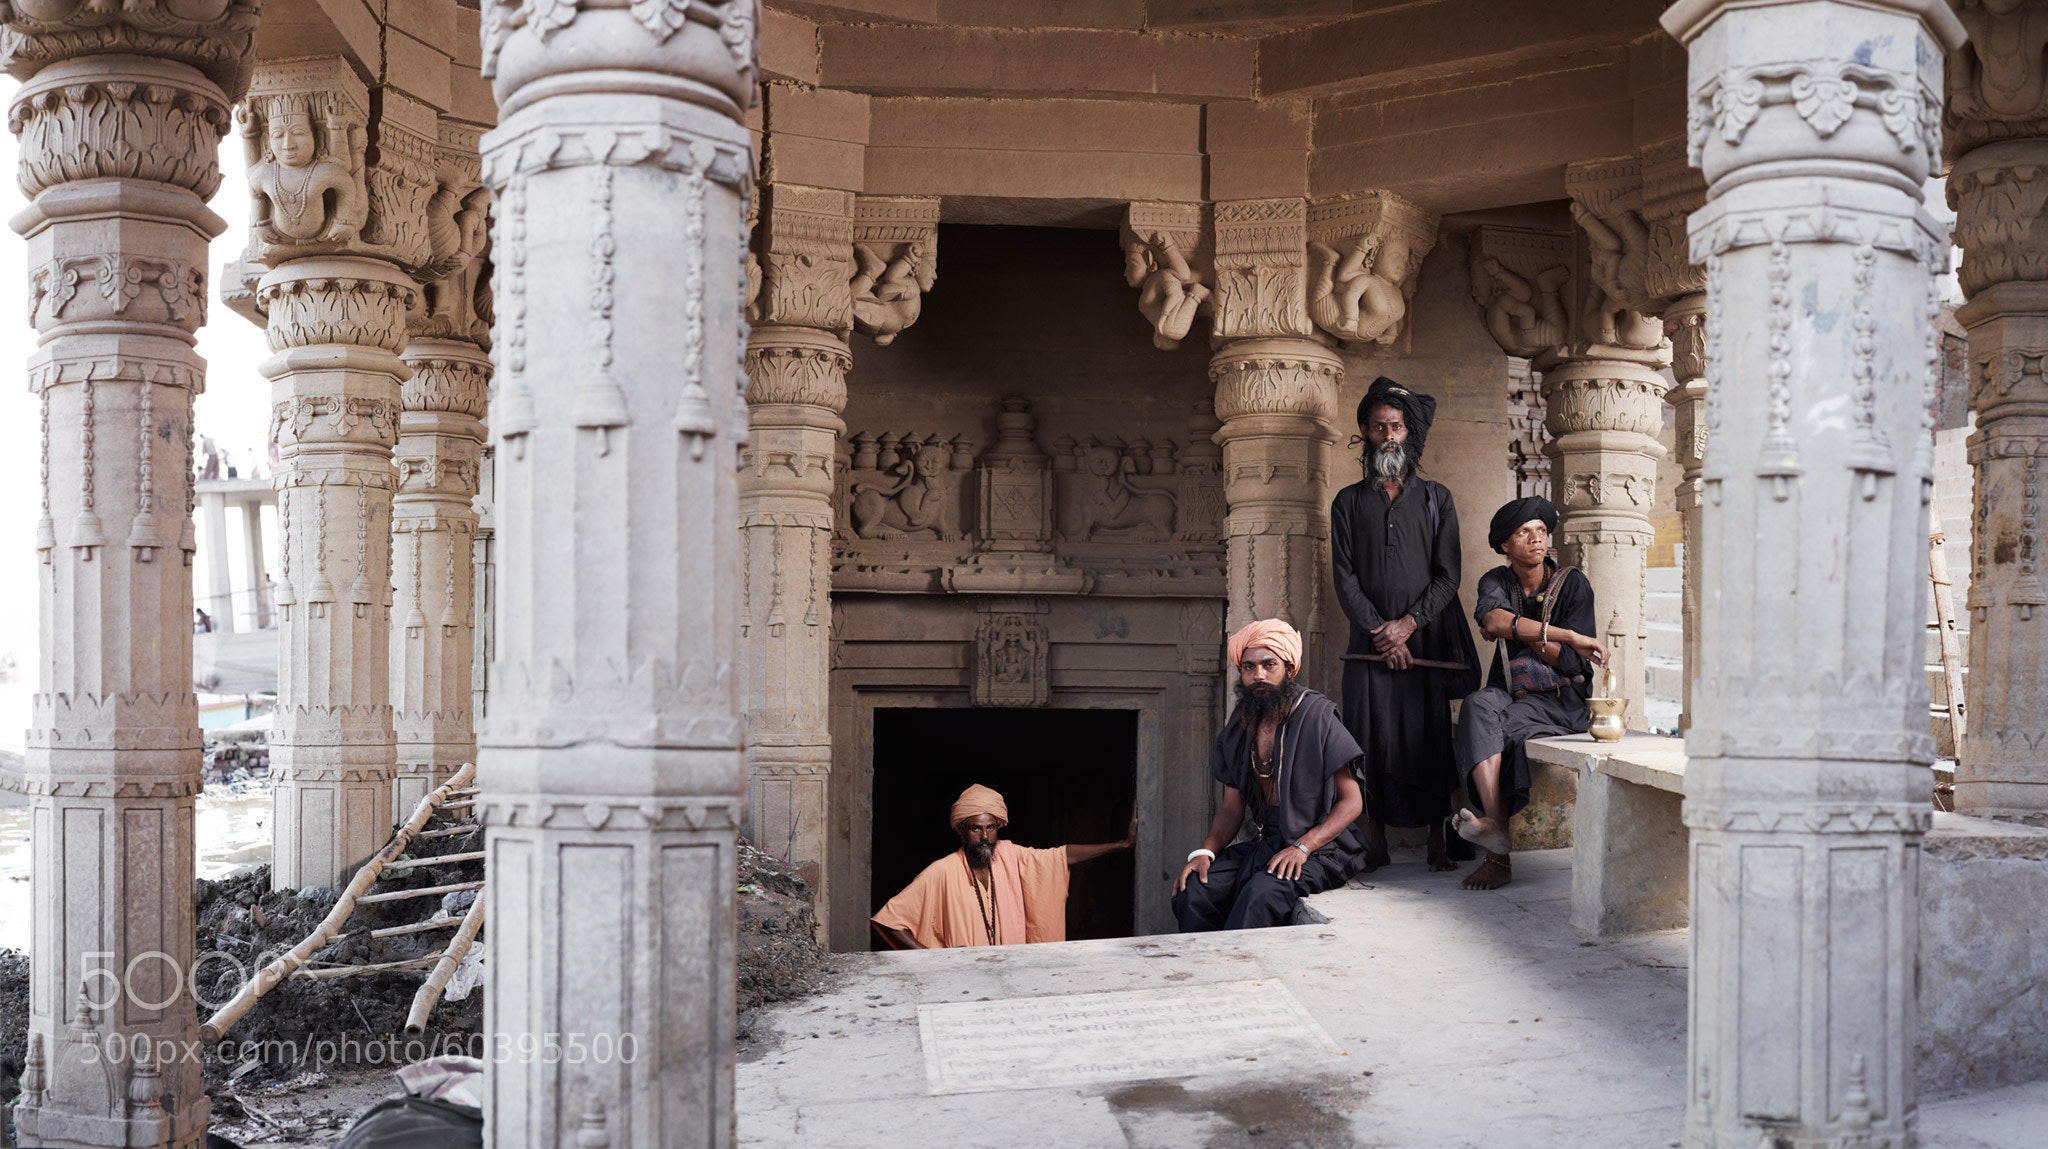 Photograph Aghori at Shiva Temple by Joey L. on 500px